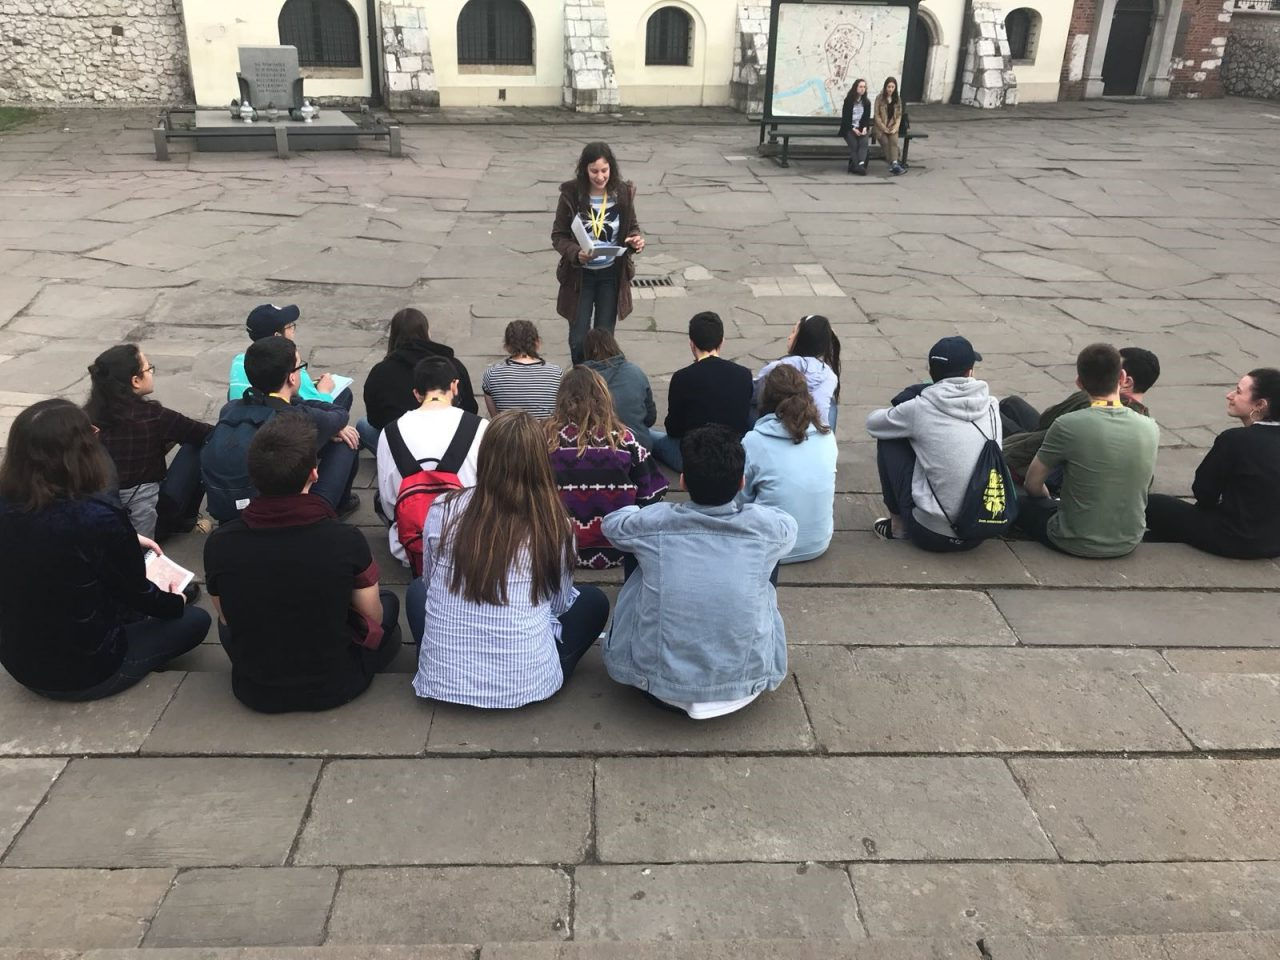 HMDT Blog: The Holocaust - Educating in Poland, Dr Rachel Century